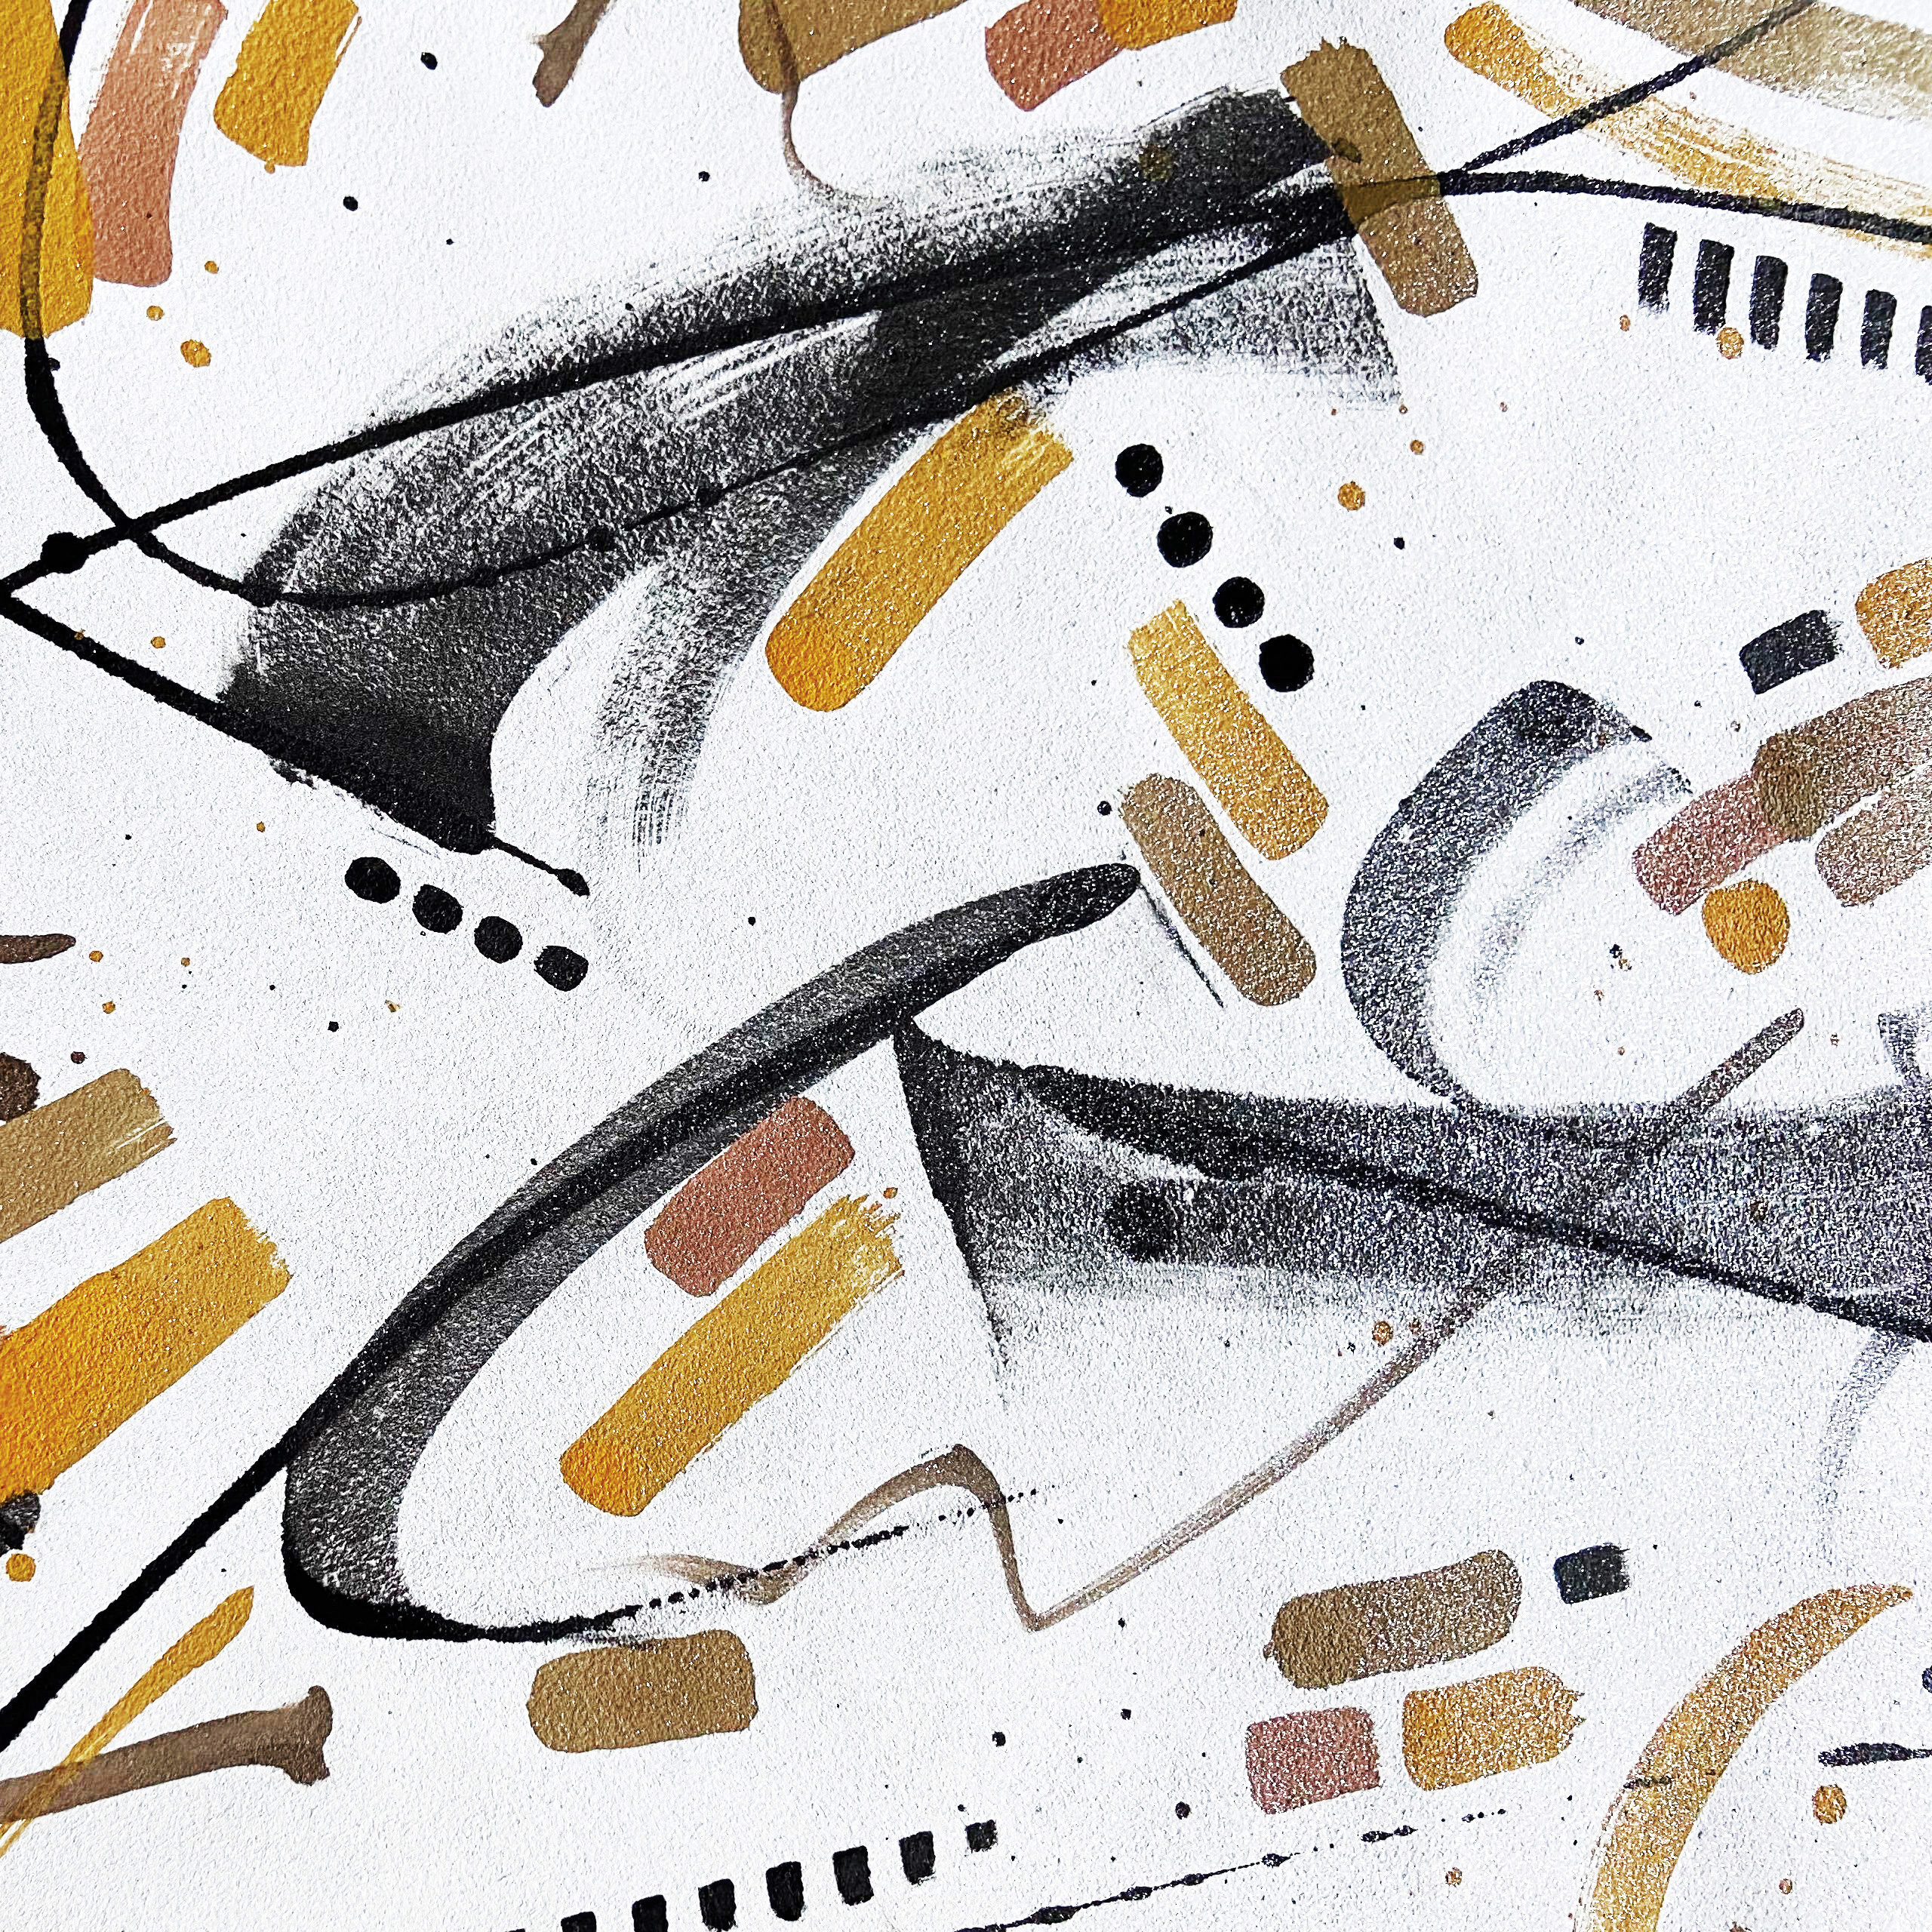 Viaminnet x Lotta Sirén - Making My Mark painted leather